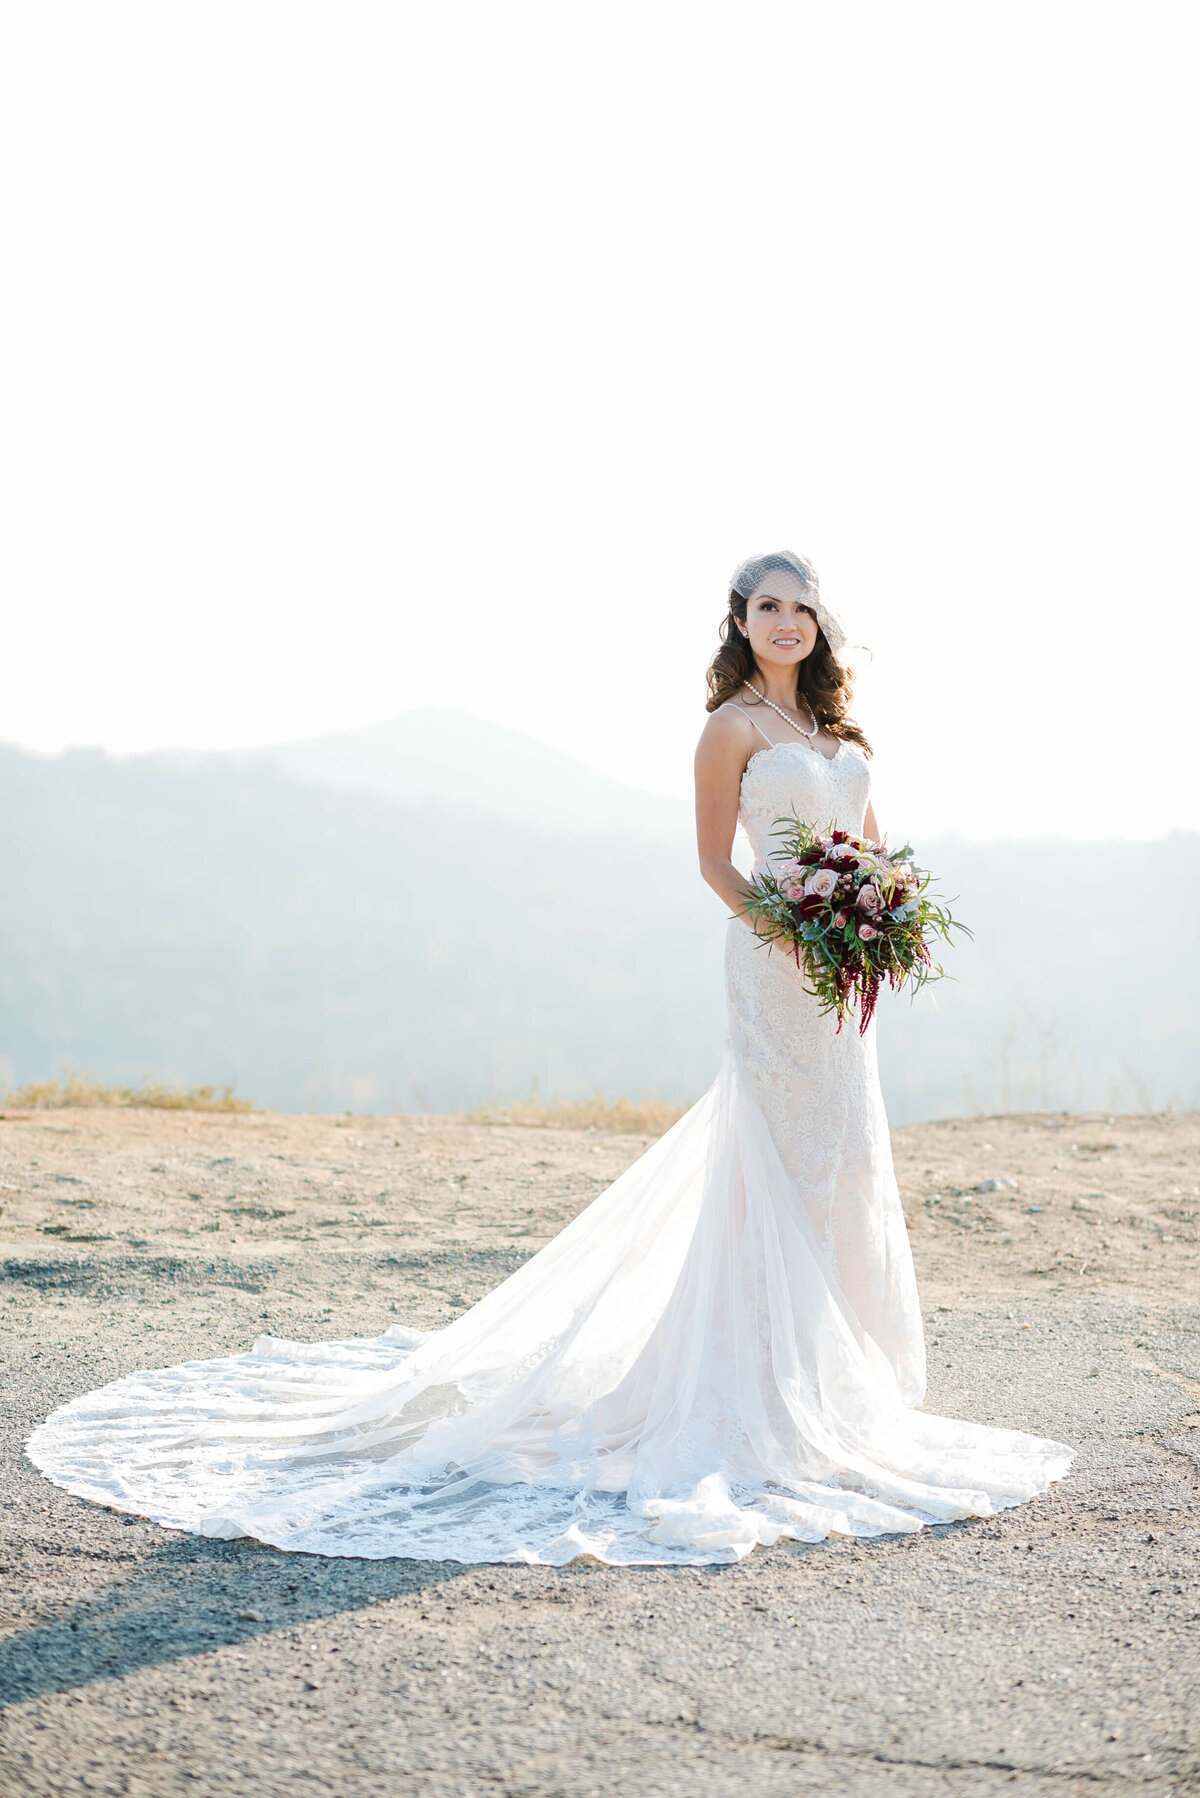 La Canada Flintridge Country Club - Karina Pires Photography